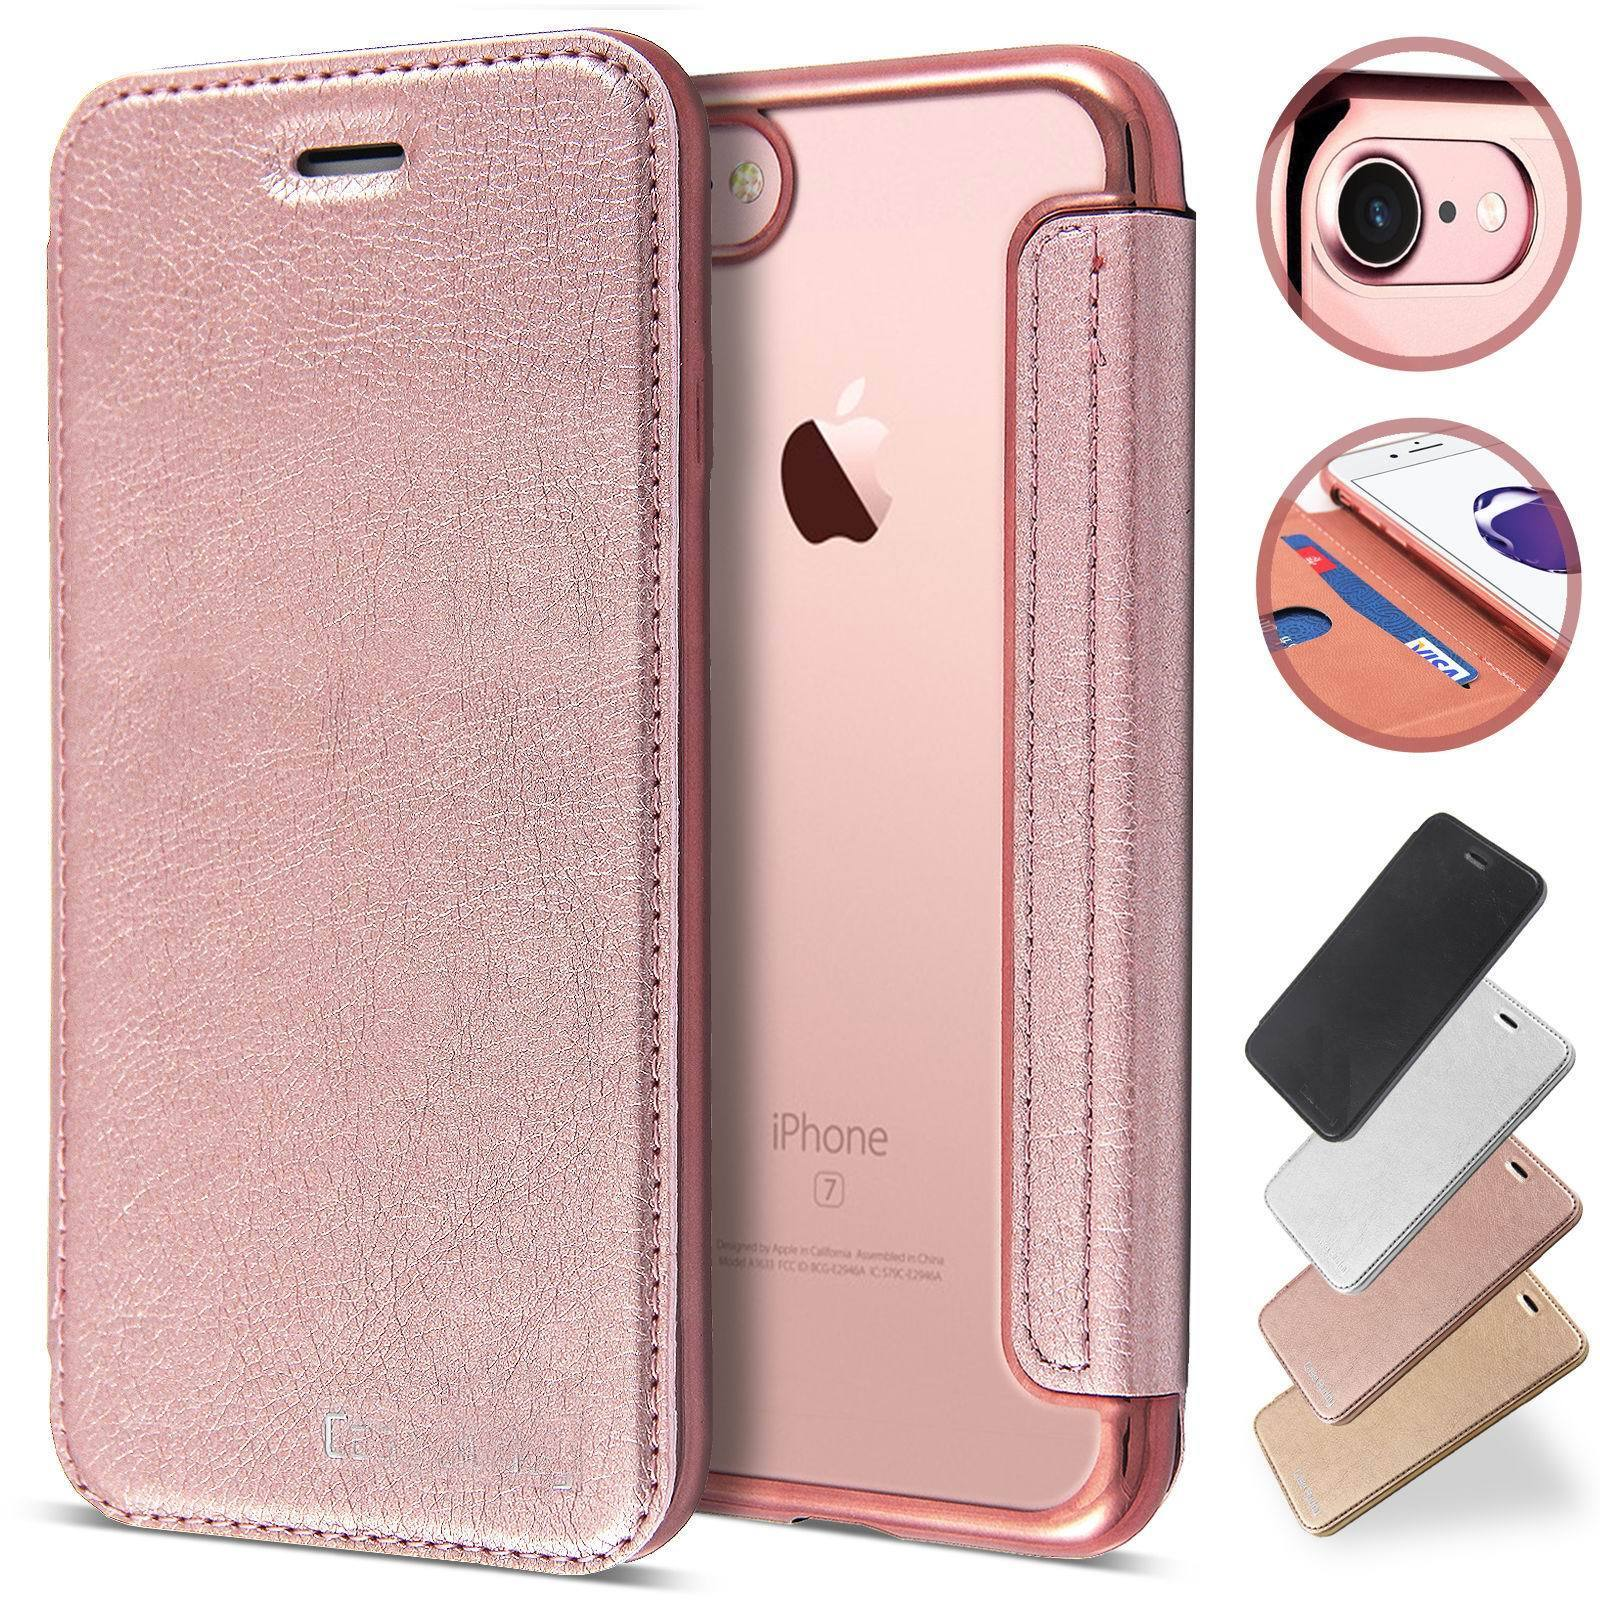 Slim Book Leather Clear Wallet Flip Cover Case For Iphone 12 11 Pro Max Xs 8 7 Ebay